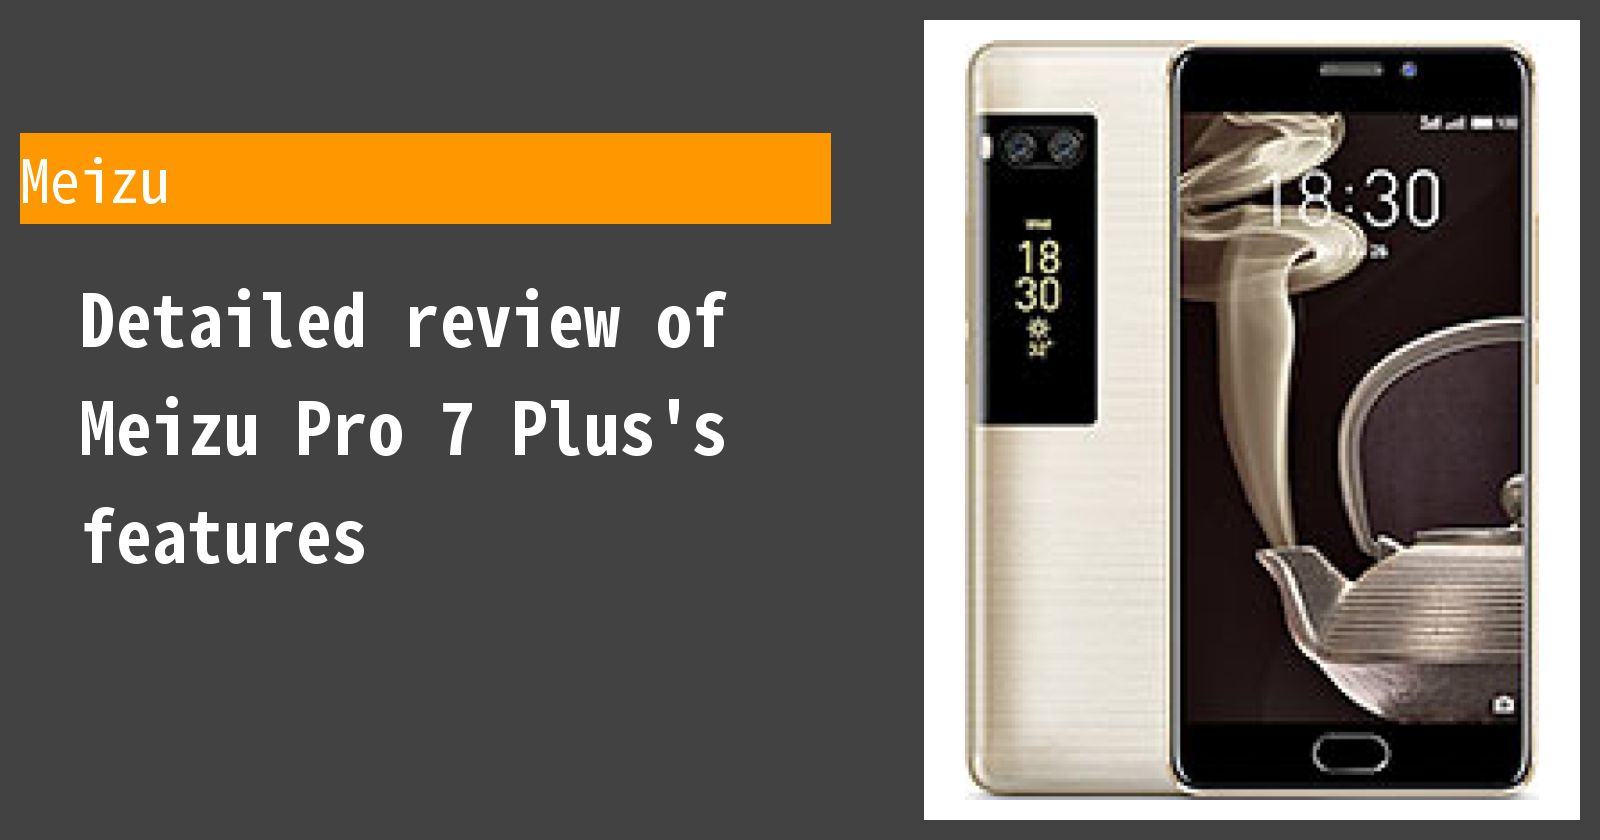 Detailed review of Meizu Pro 7 Plus's features